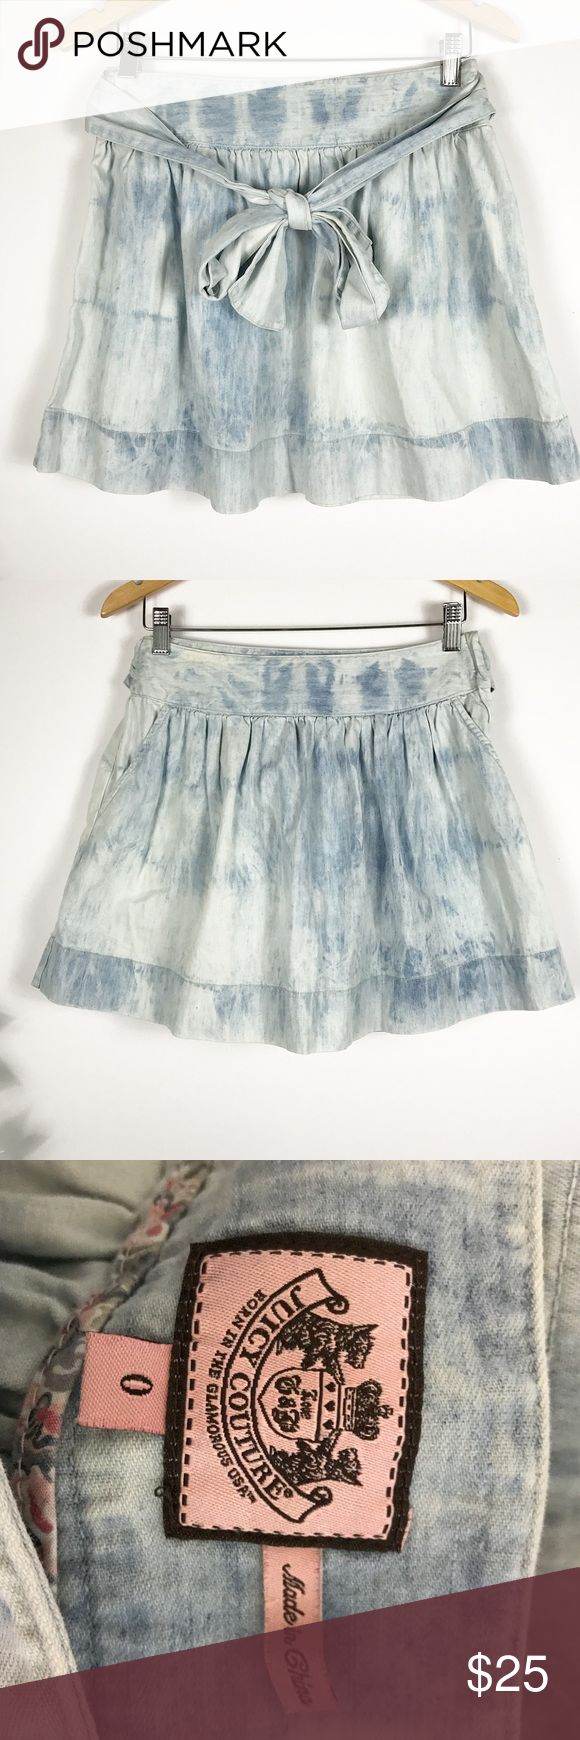 "JUICY COUTURE ACID WASH BOW TIE DENIM SKATER SKIRT JUICY COUTURE ACID WASH BOW TIE DENIM SKATER SKIRT. Side pockets! Perfect condition! Measures approx 14.5""w 16""long laying flat size 0 Juicy Couture Skirts Circle & Skater"